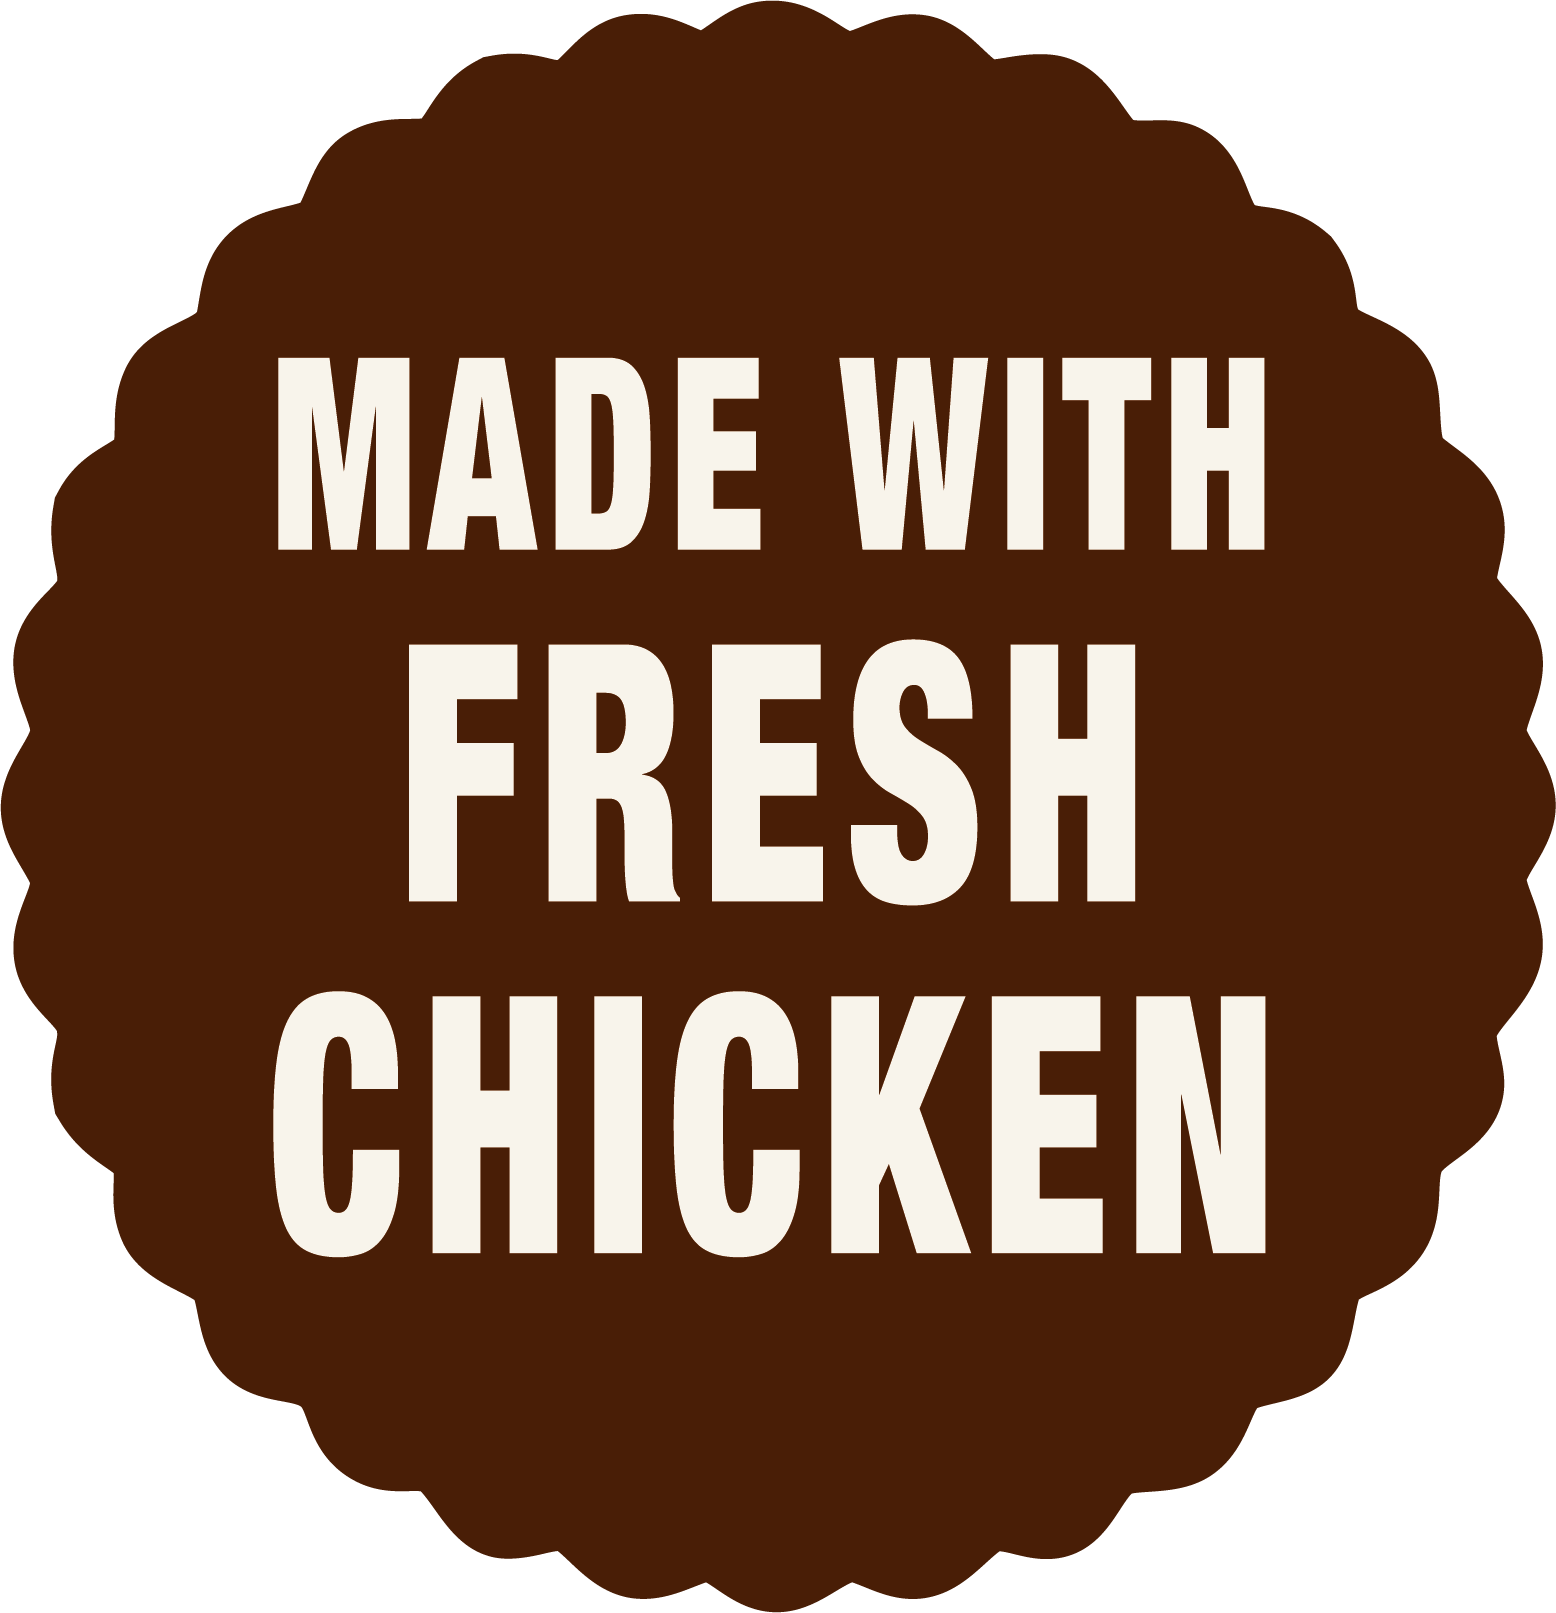 Made with fresh chicken dog food - Laughing Dog food